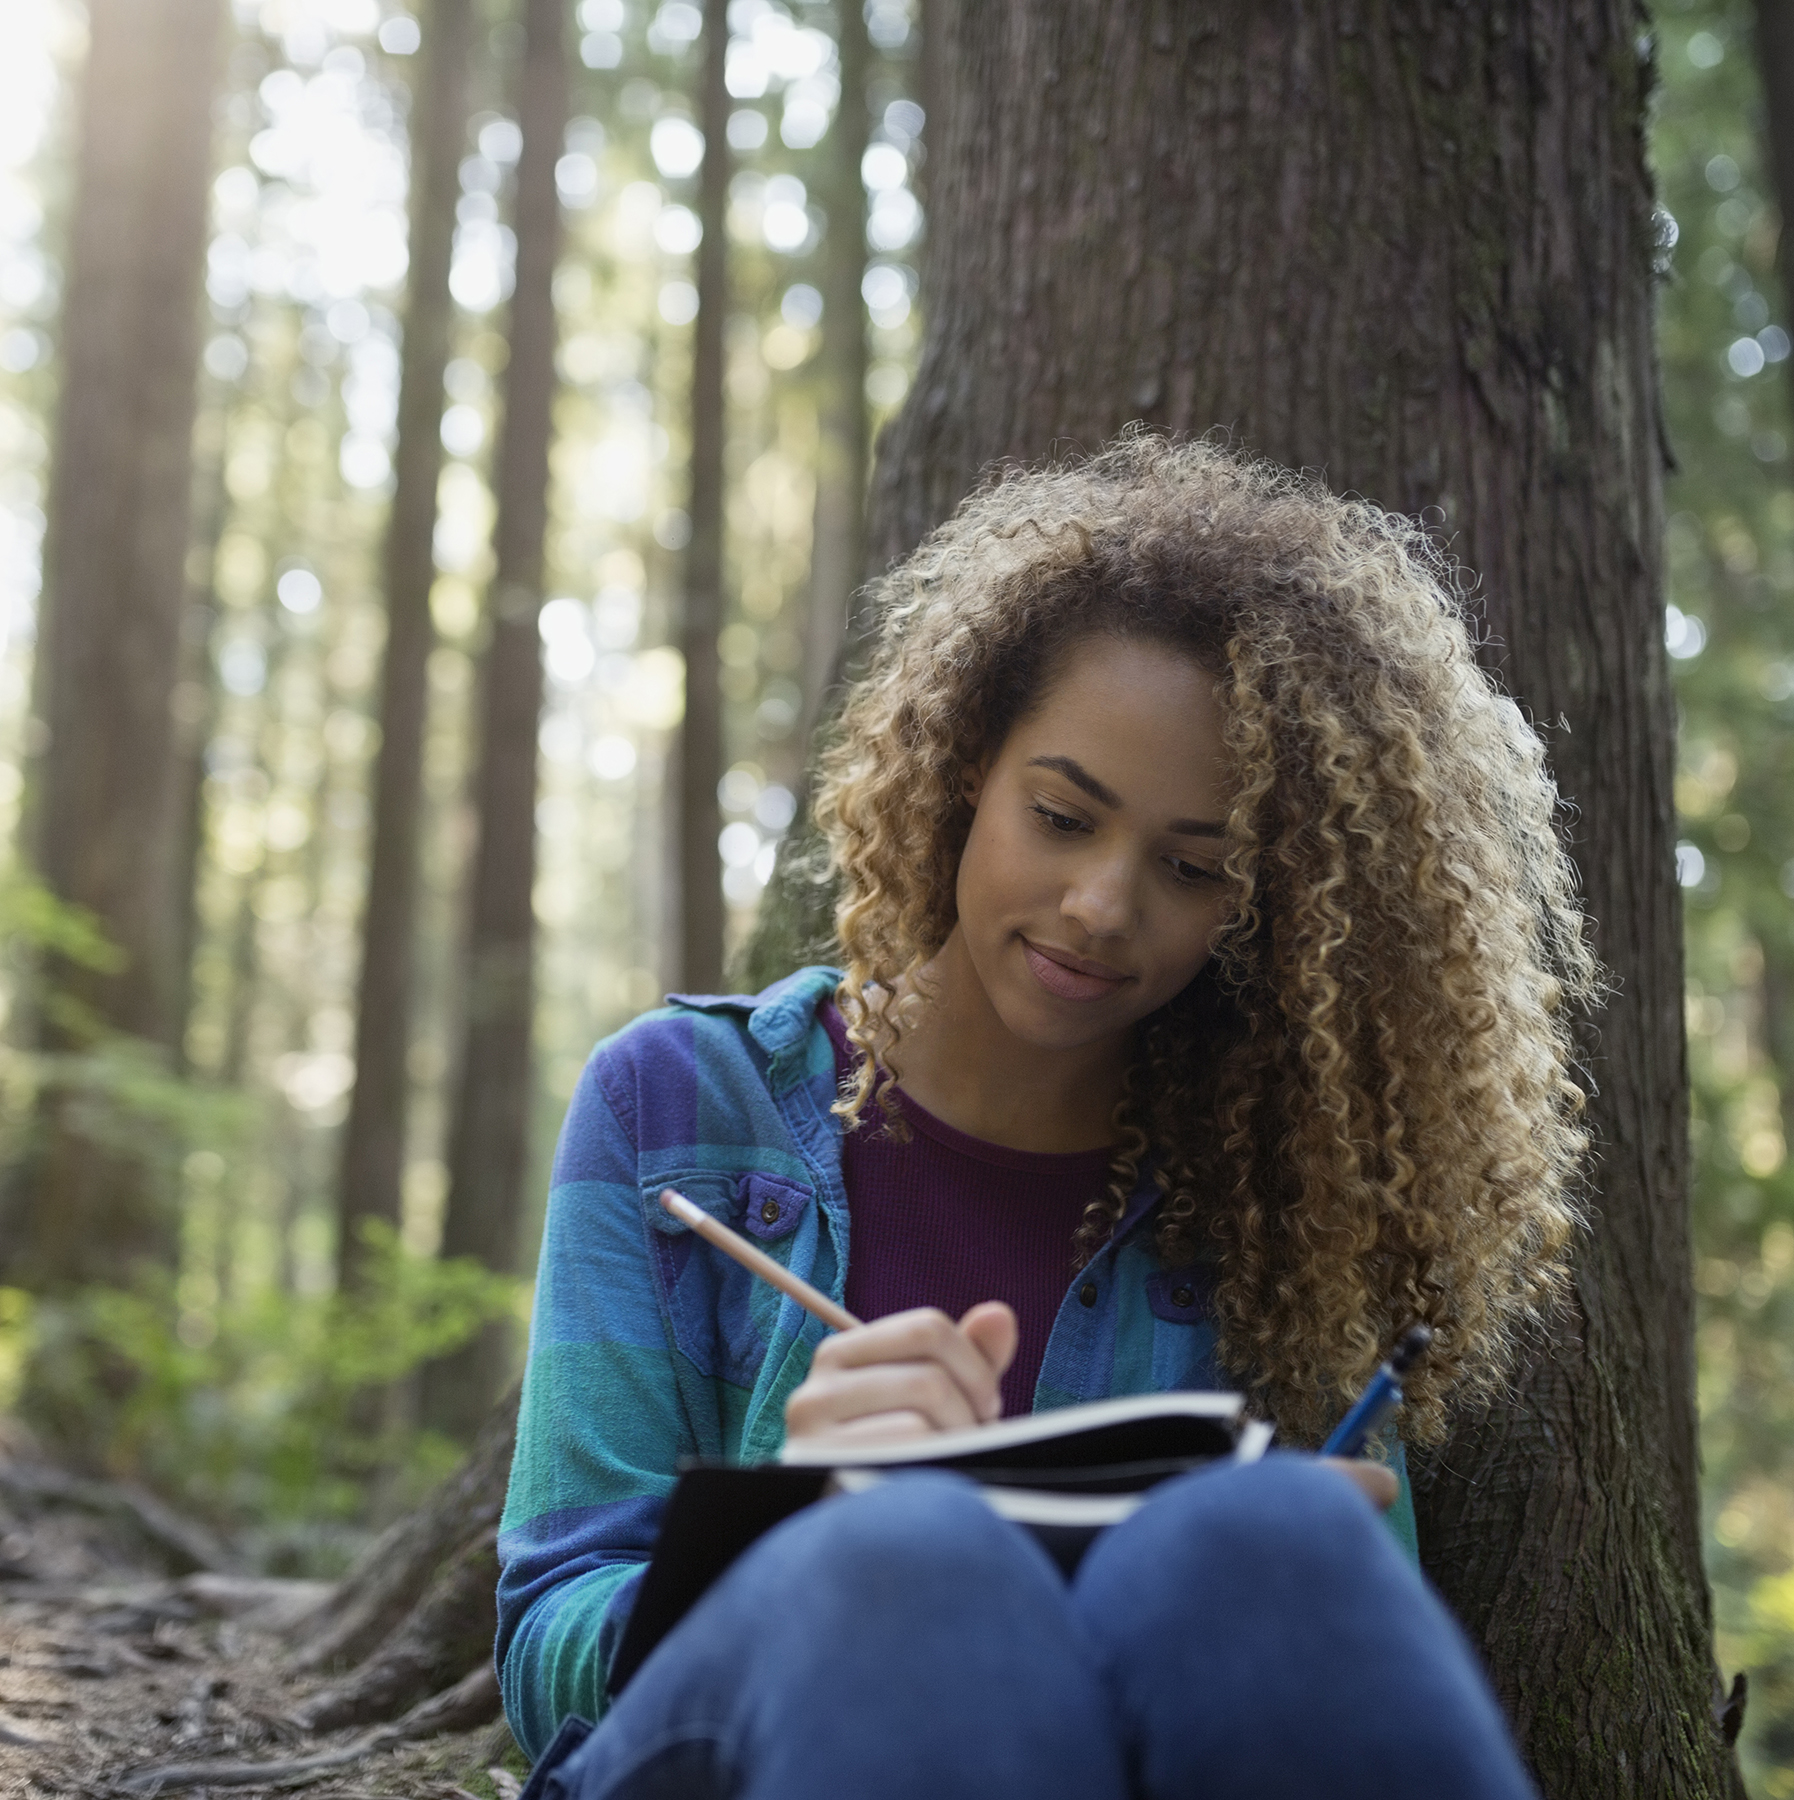 Woman writing in journal in woods